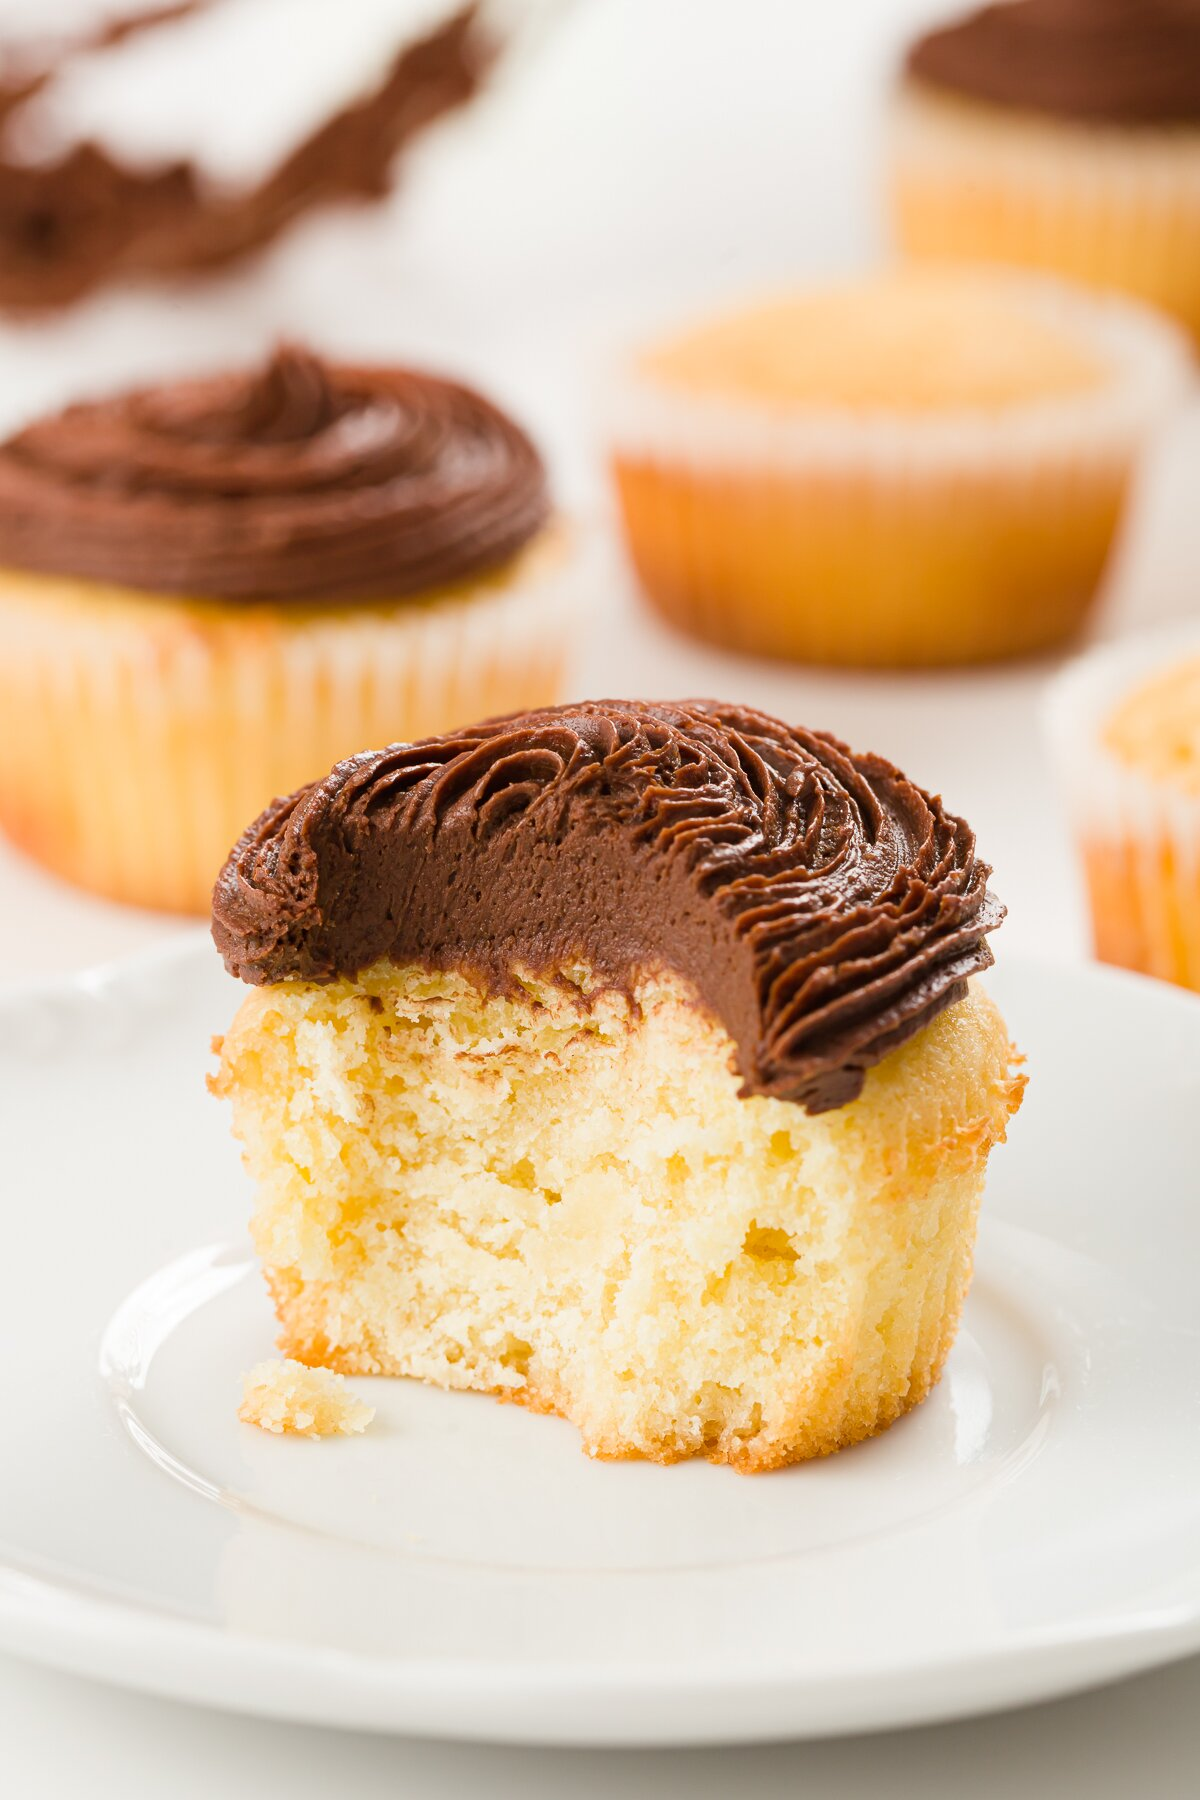 tight shot of an interior of a pound cake cupcake frosted with chocolate ganache frosting with other cupcakes in the background